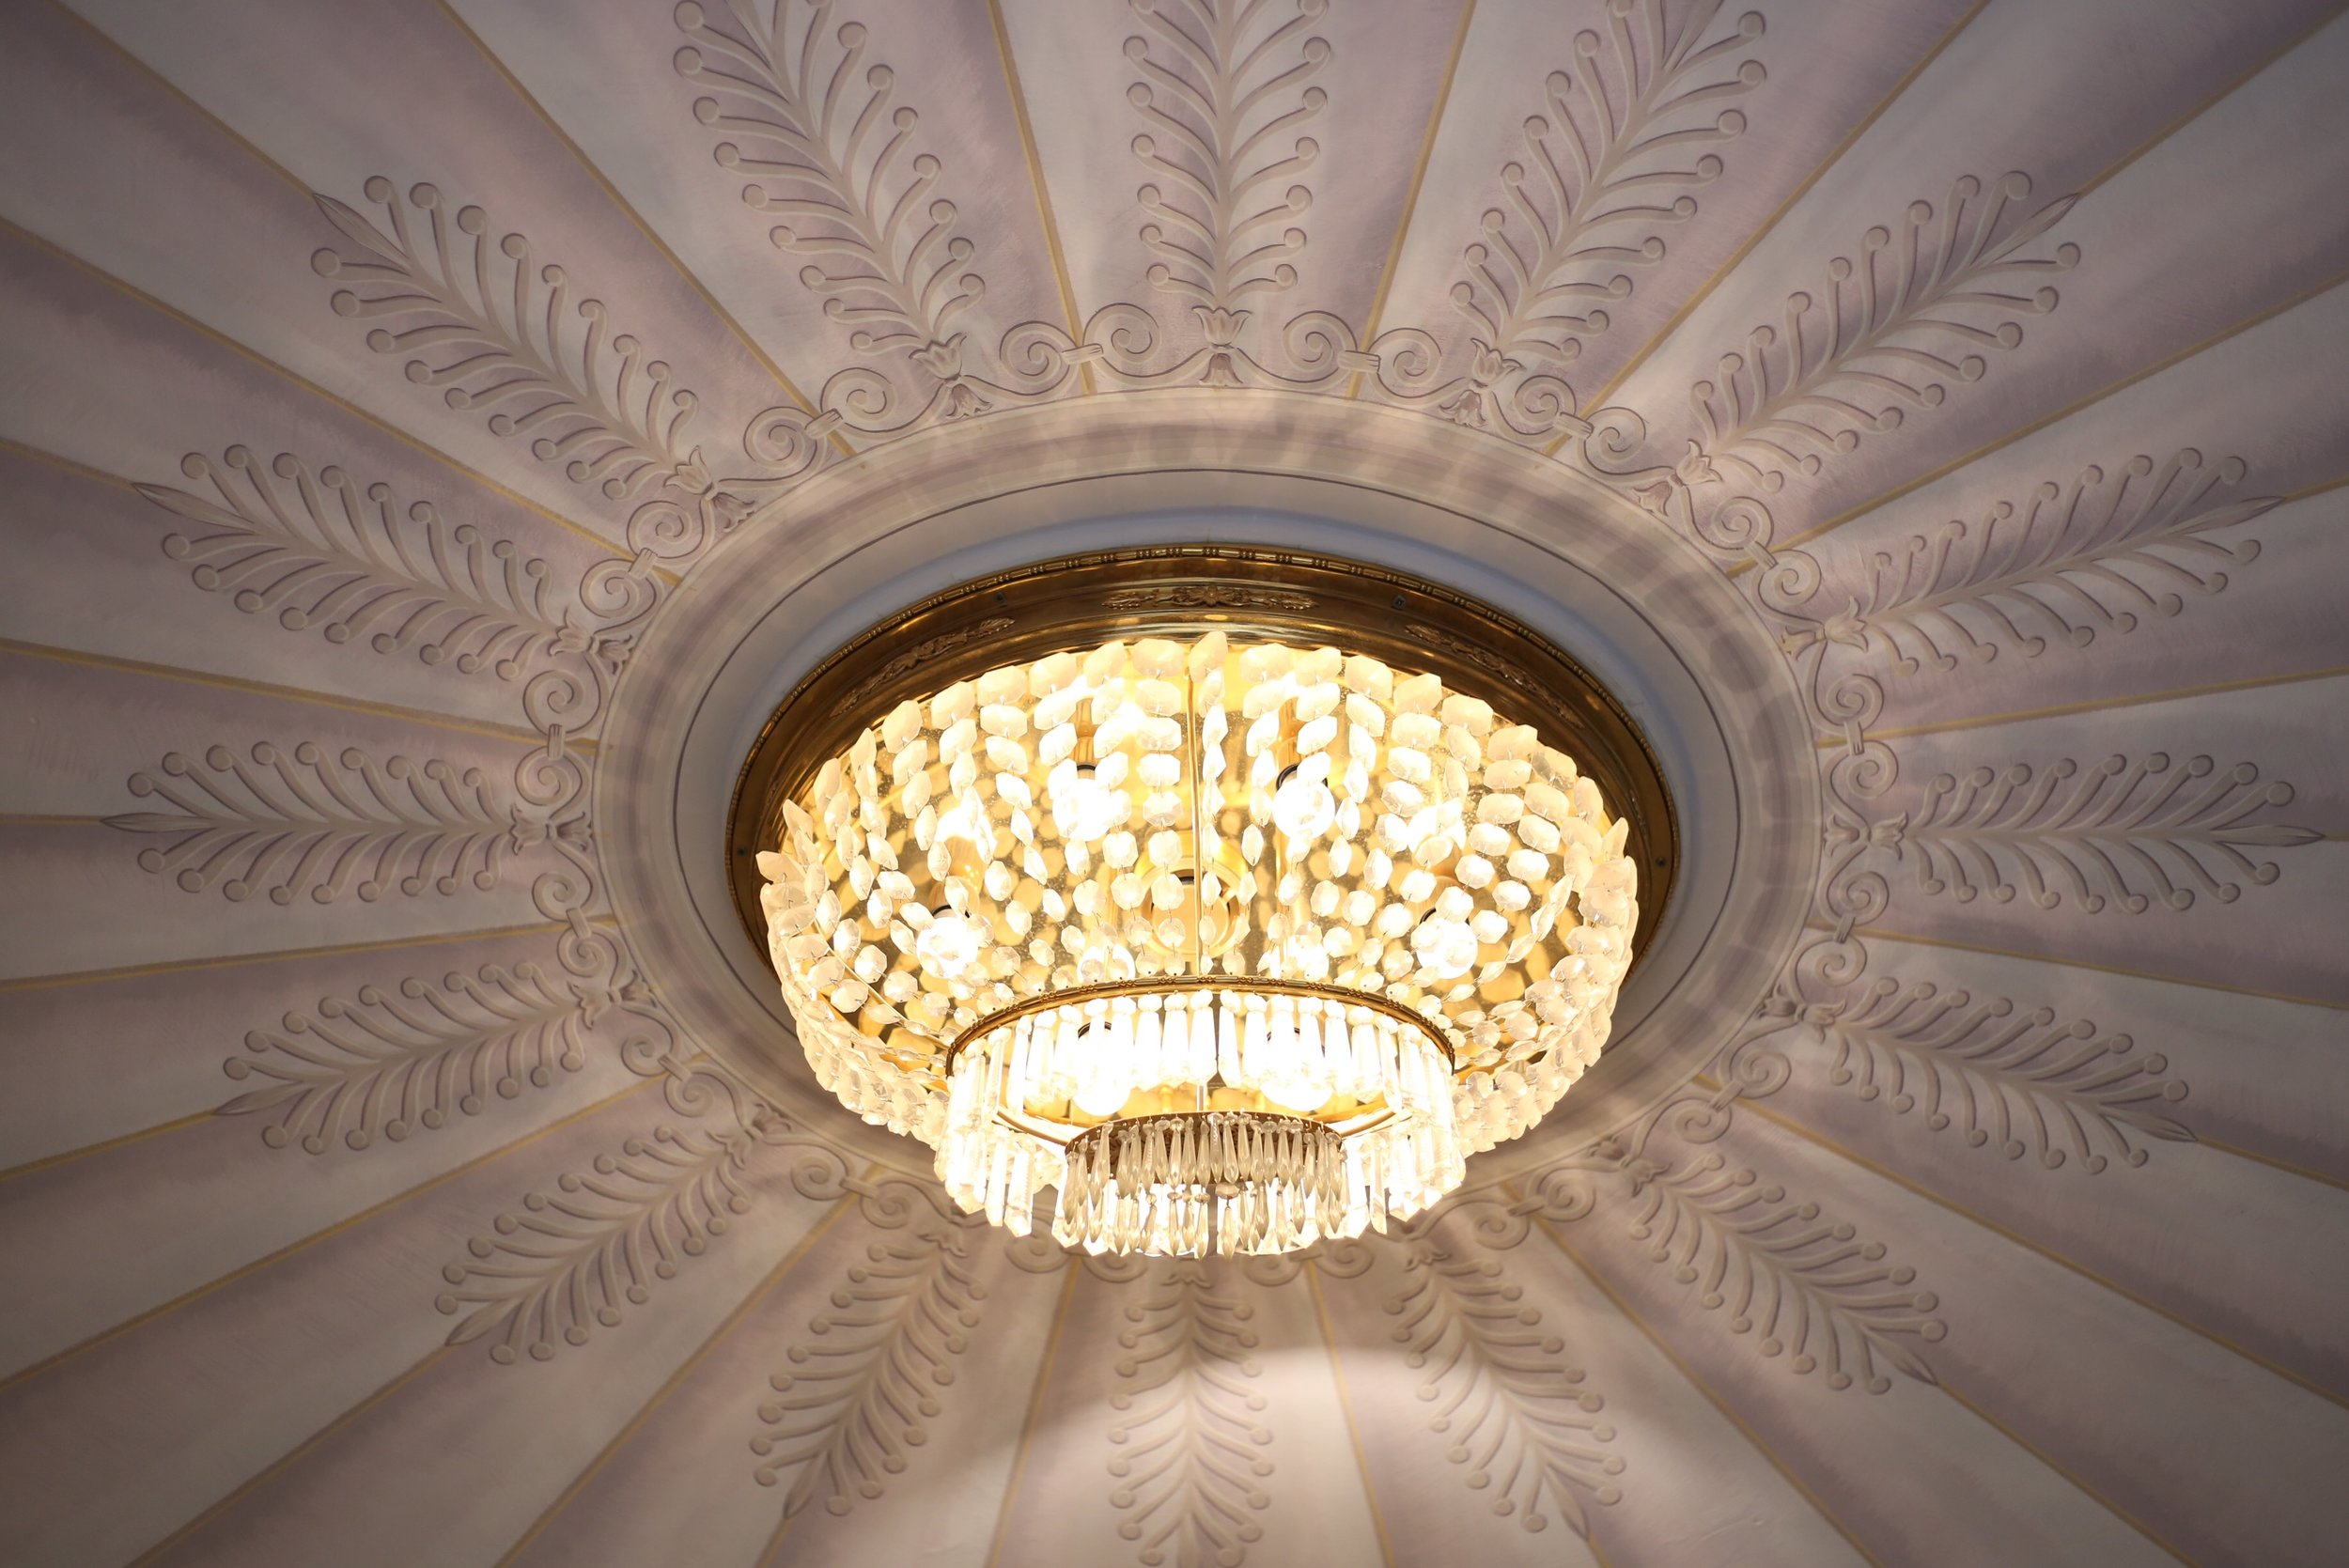 A small crystal chandelier set in the middle of a painted marquee ceiling.